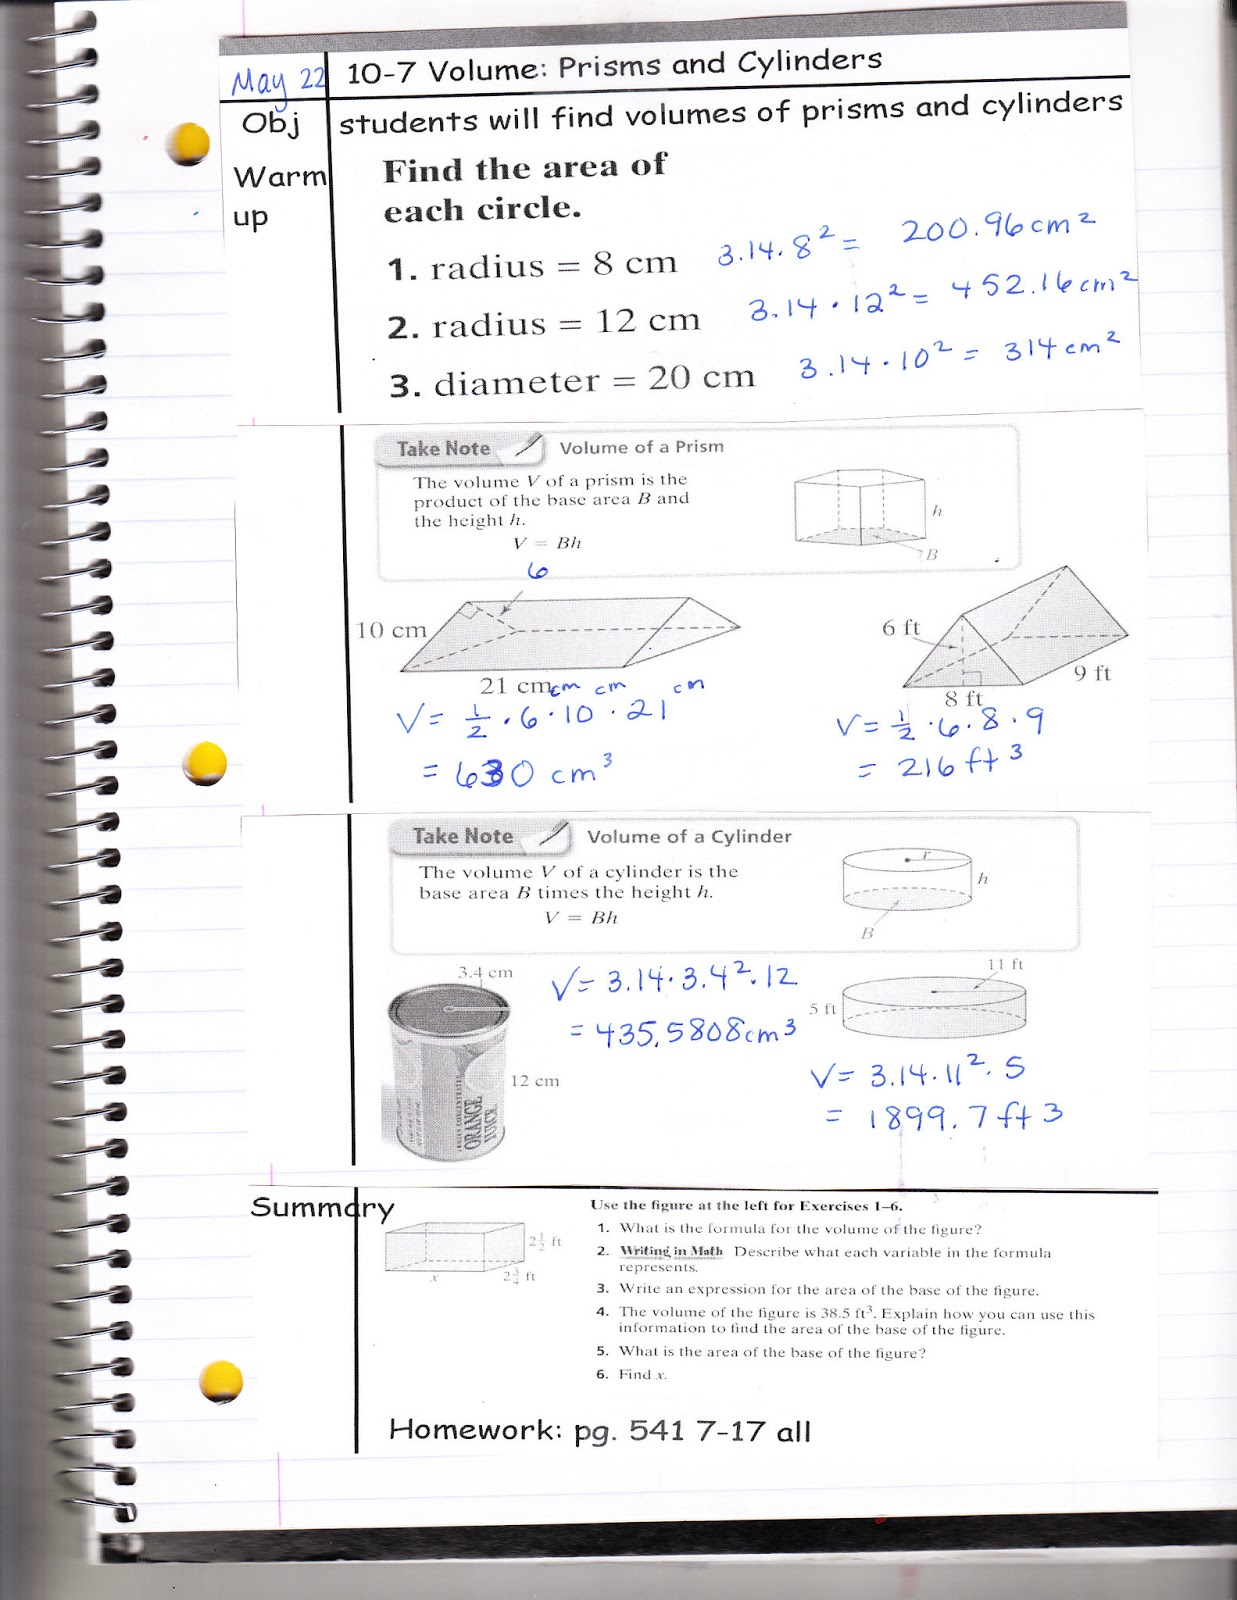 Ms Jean S Classroom Blog 10 7 Volume Prisms And Cylinders